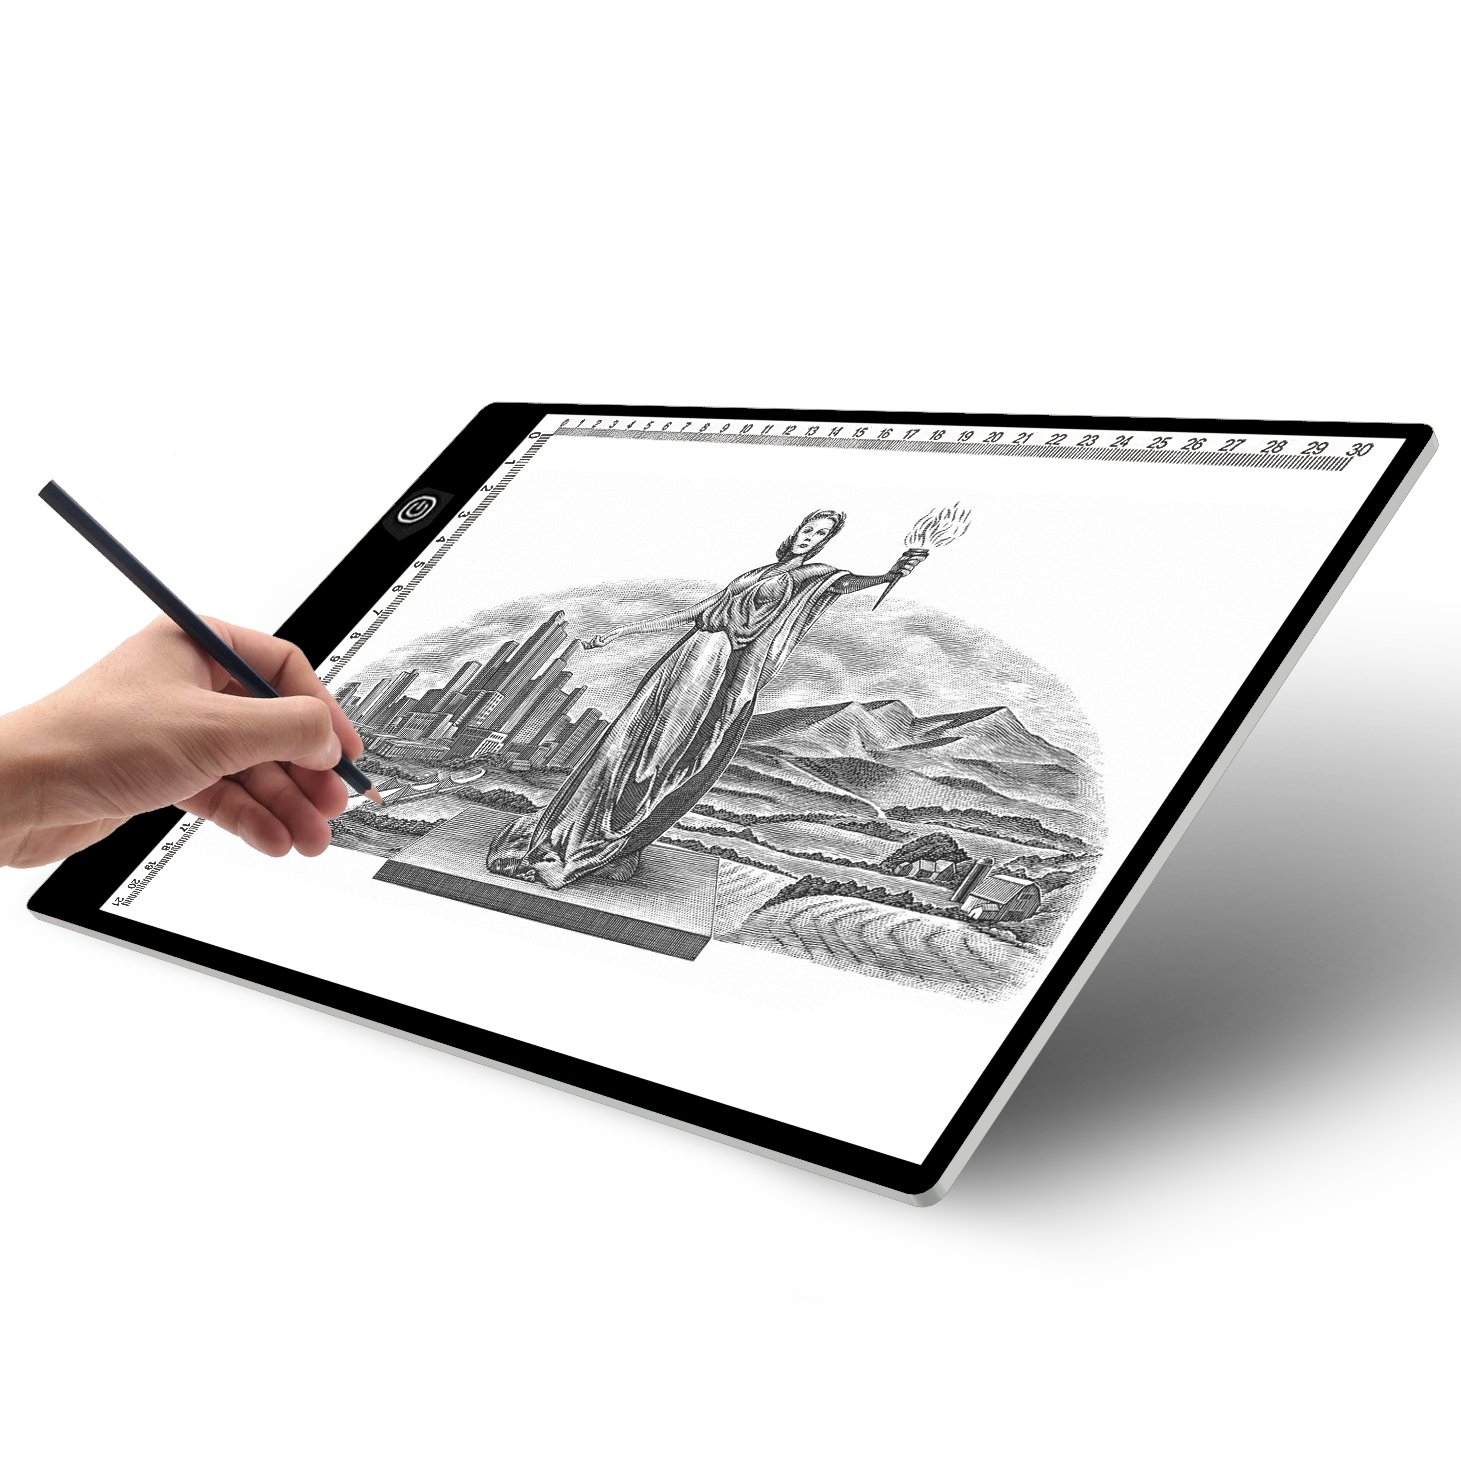 A4 Light Box Tracer with Scale |Ultra-Thin USB Powered Portable Dimmable Brightness LED Artcraft Tracing Light Pad | Light Box for Artists Drawing Sketching Animation Designing by Luditek